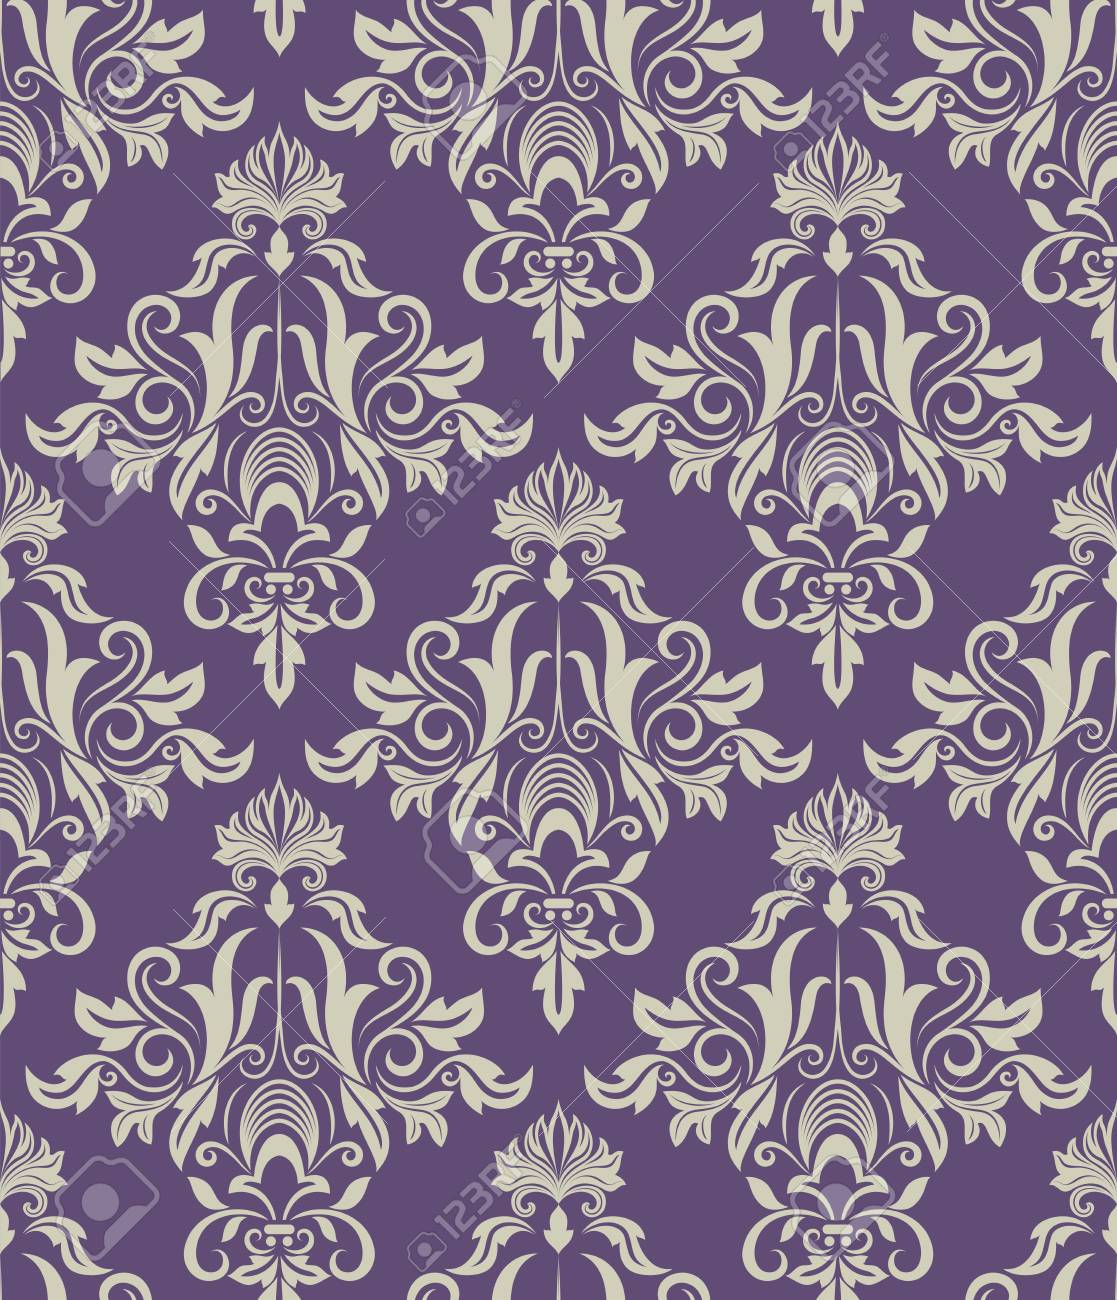 Dark Purple And Beige Vintage Wallpaper Pattern Vector Illustration Stock